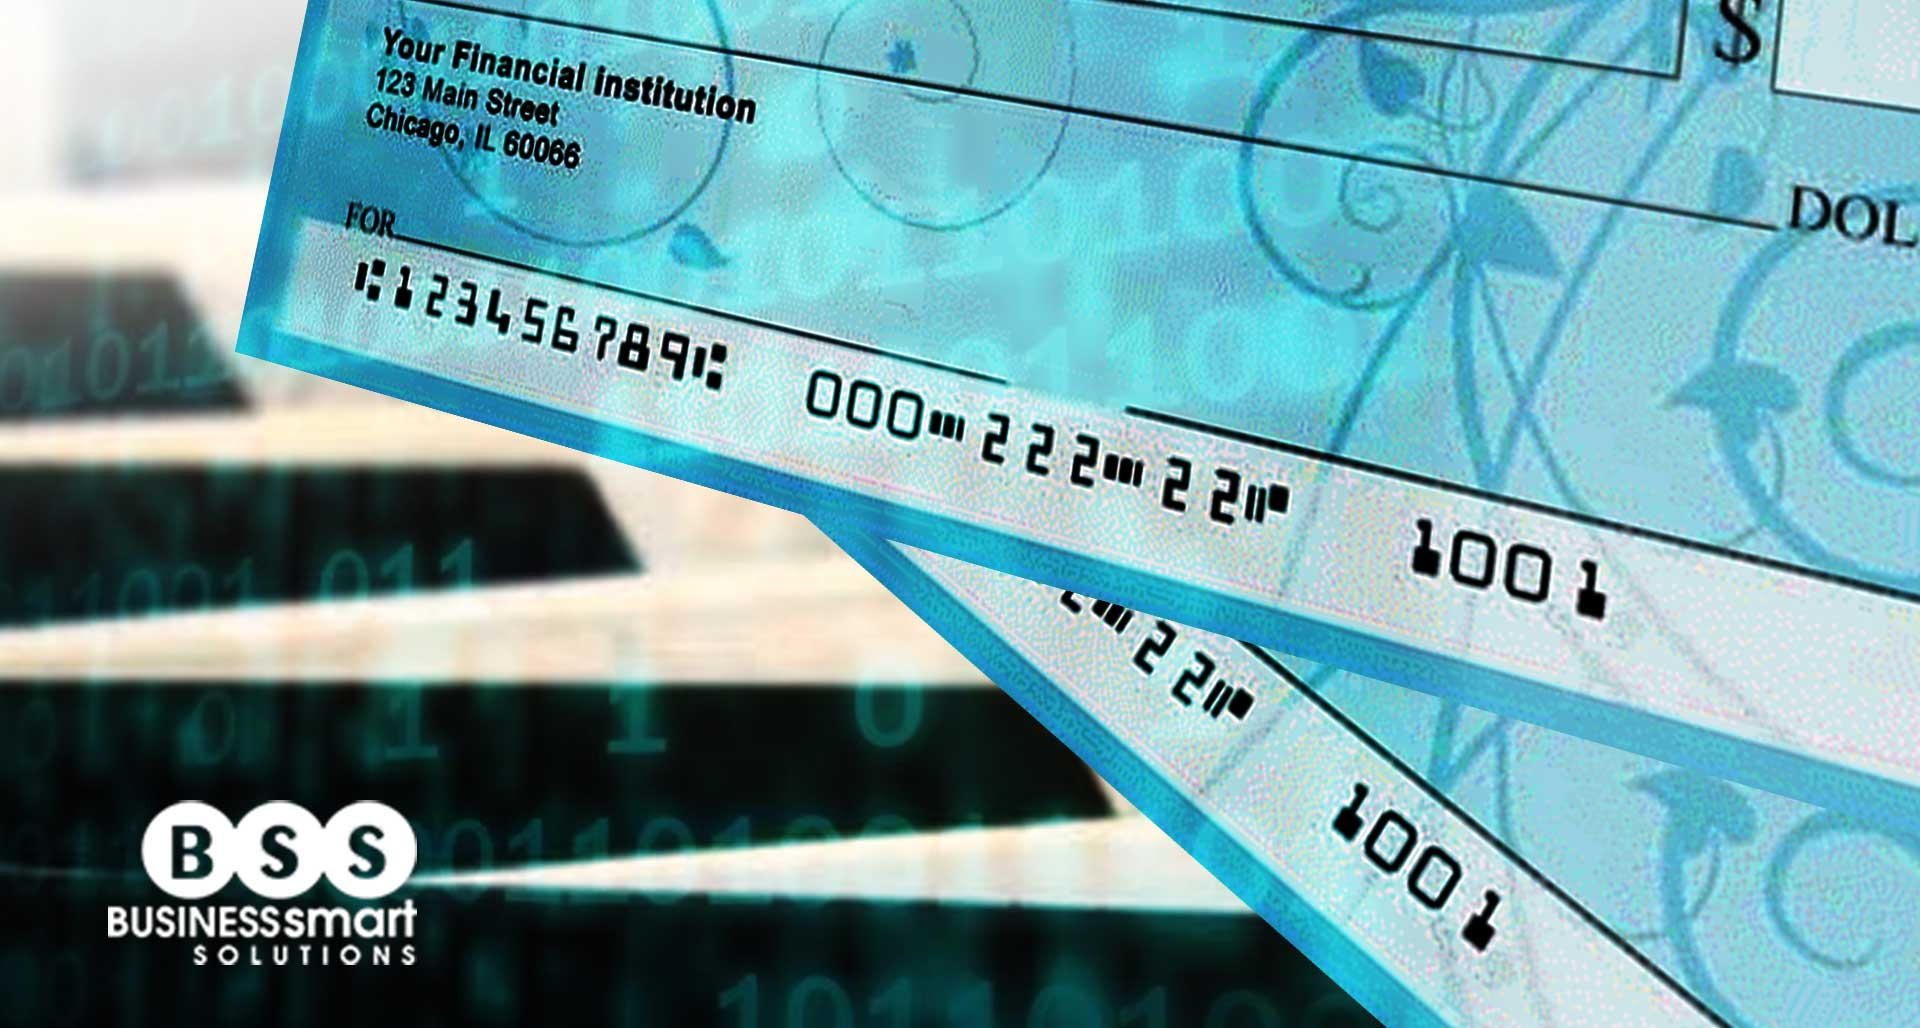 Cheque Encoding & Personalisation Solution